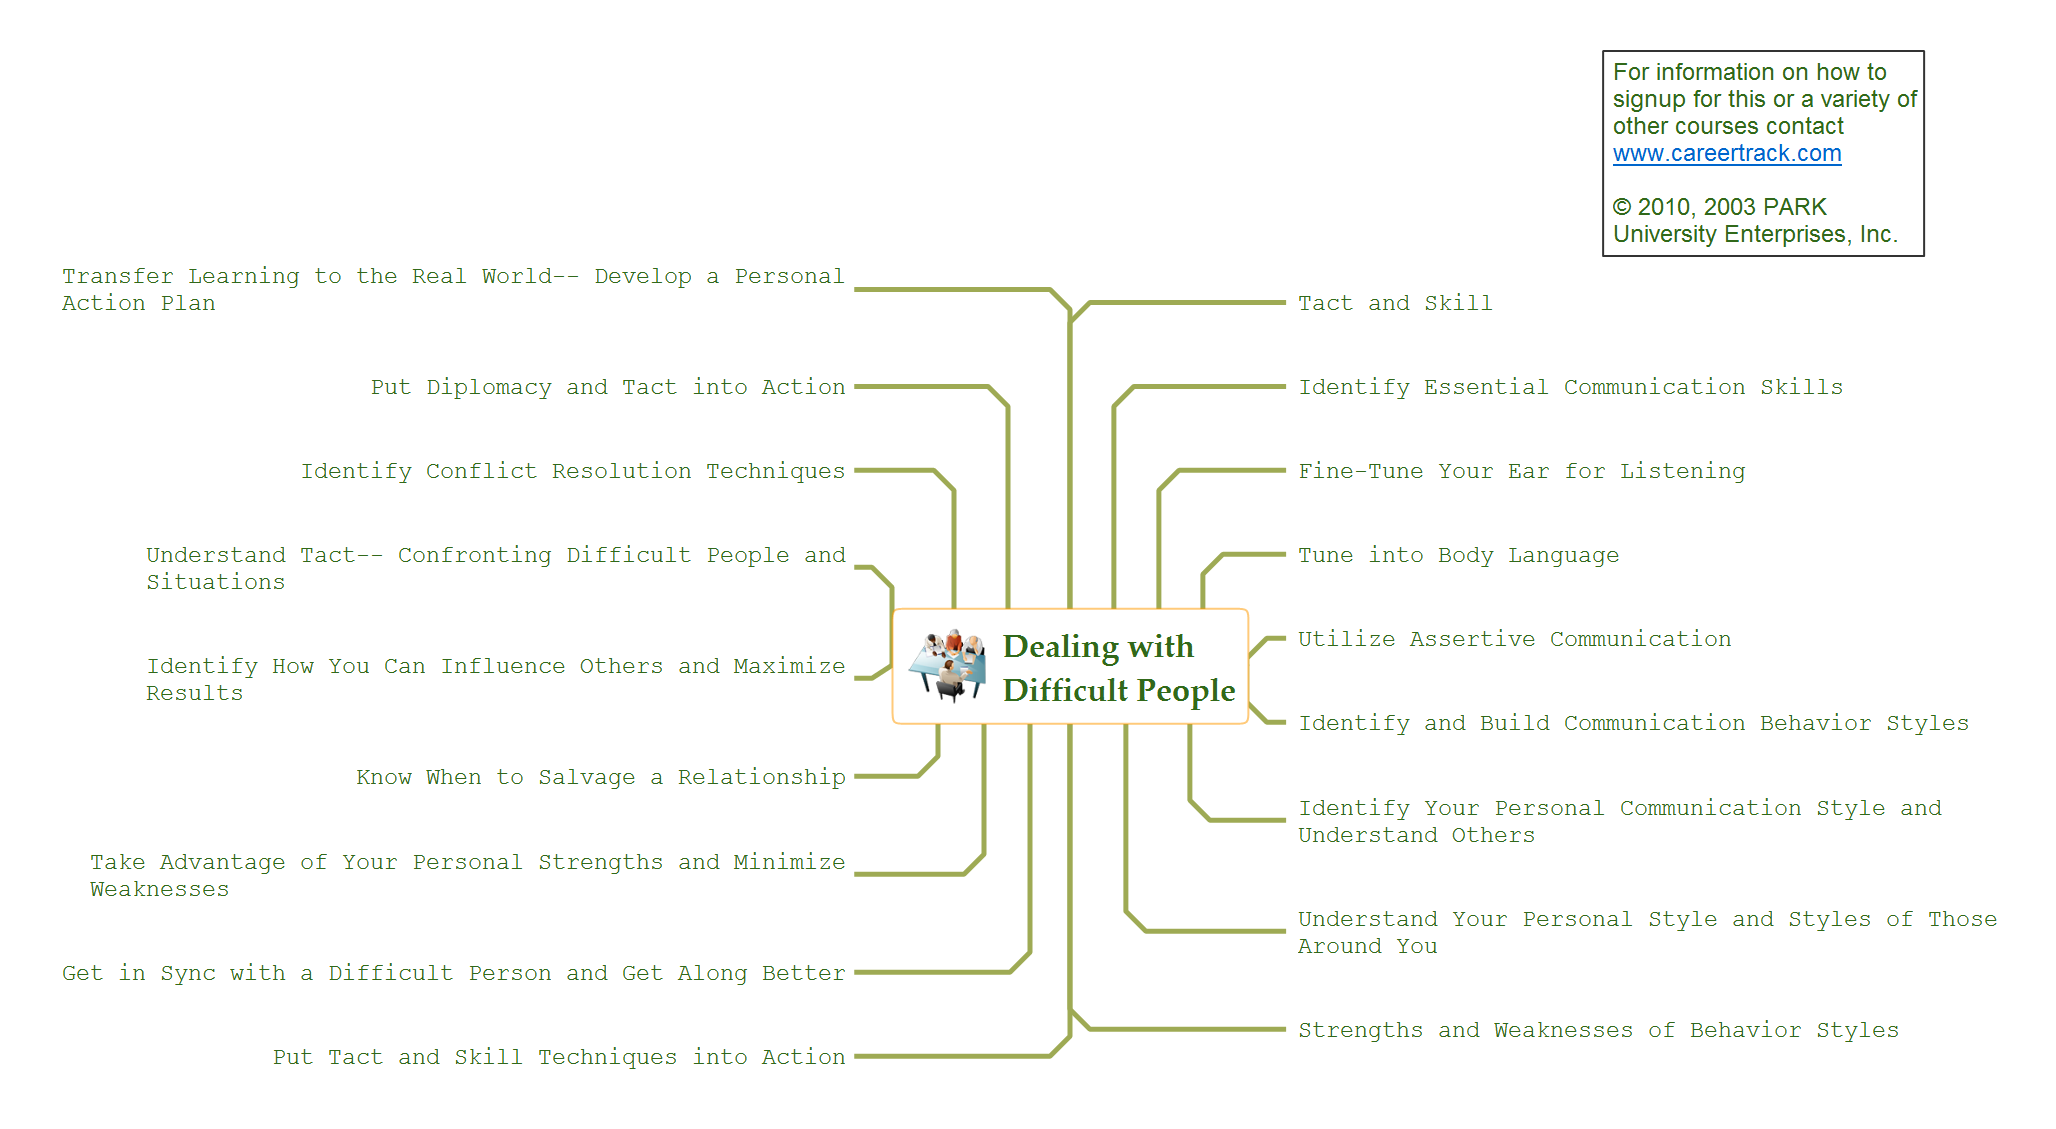 Mindmap presentation - Pryor - Dealing with difficult people